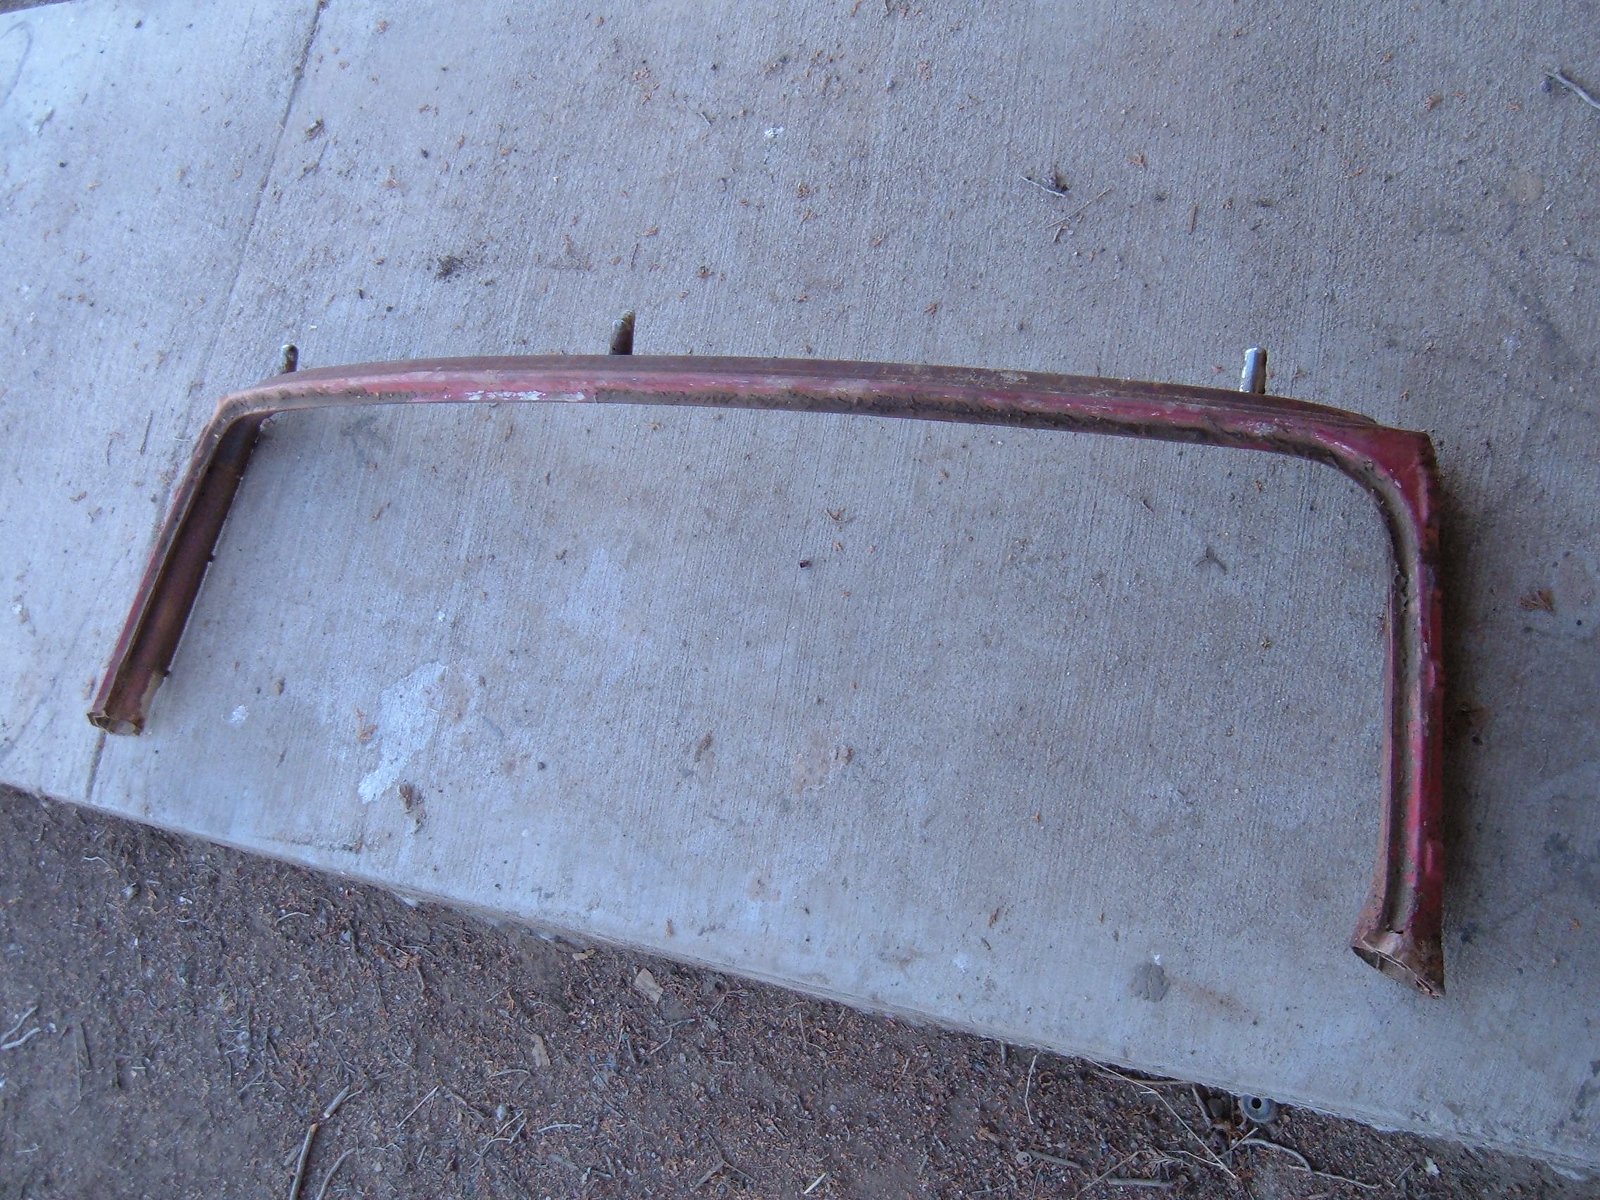 1953 54 chevrolet convertible windshield frame (z 53-4chevwindframe)